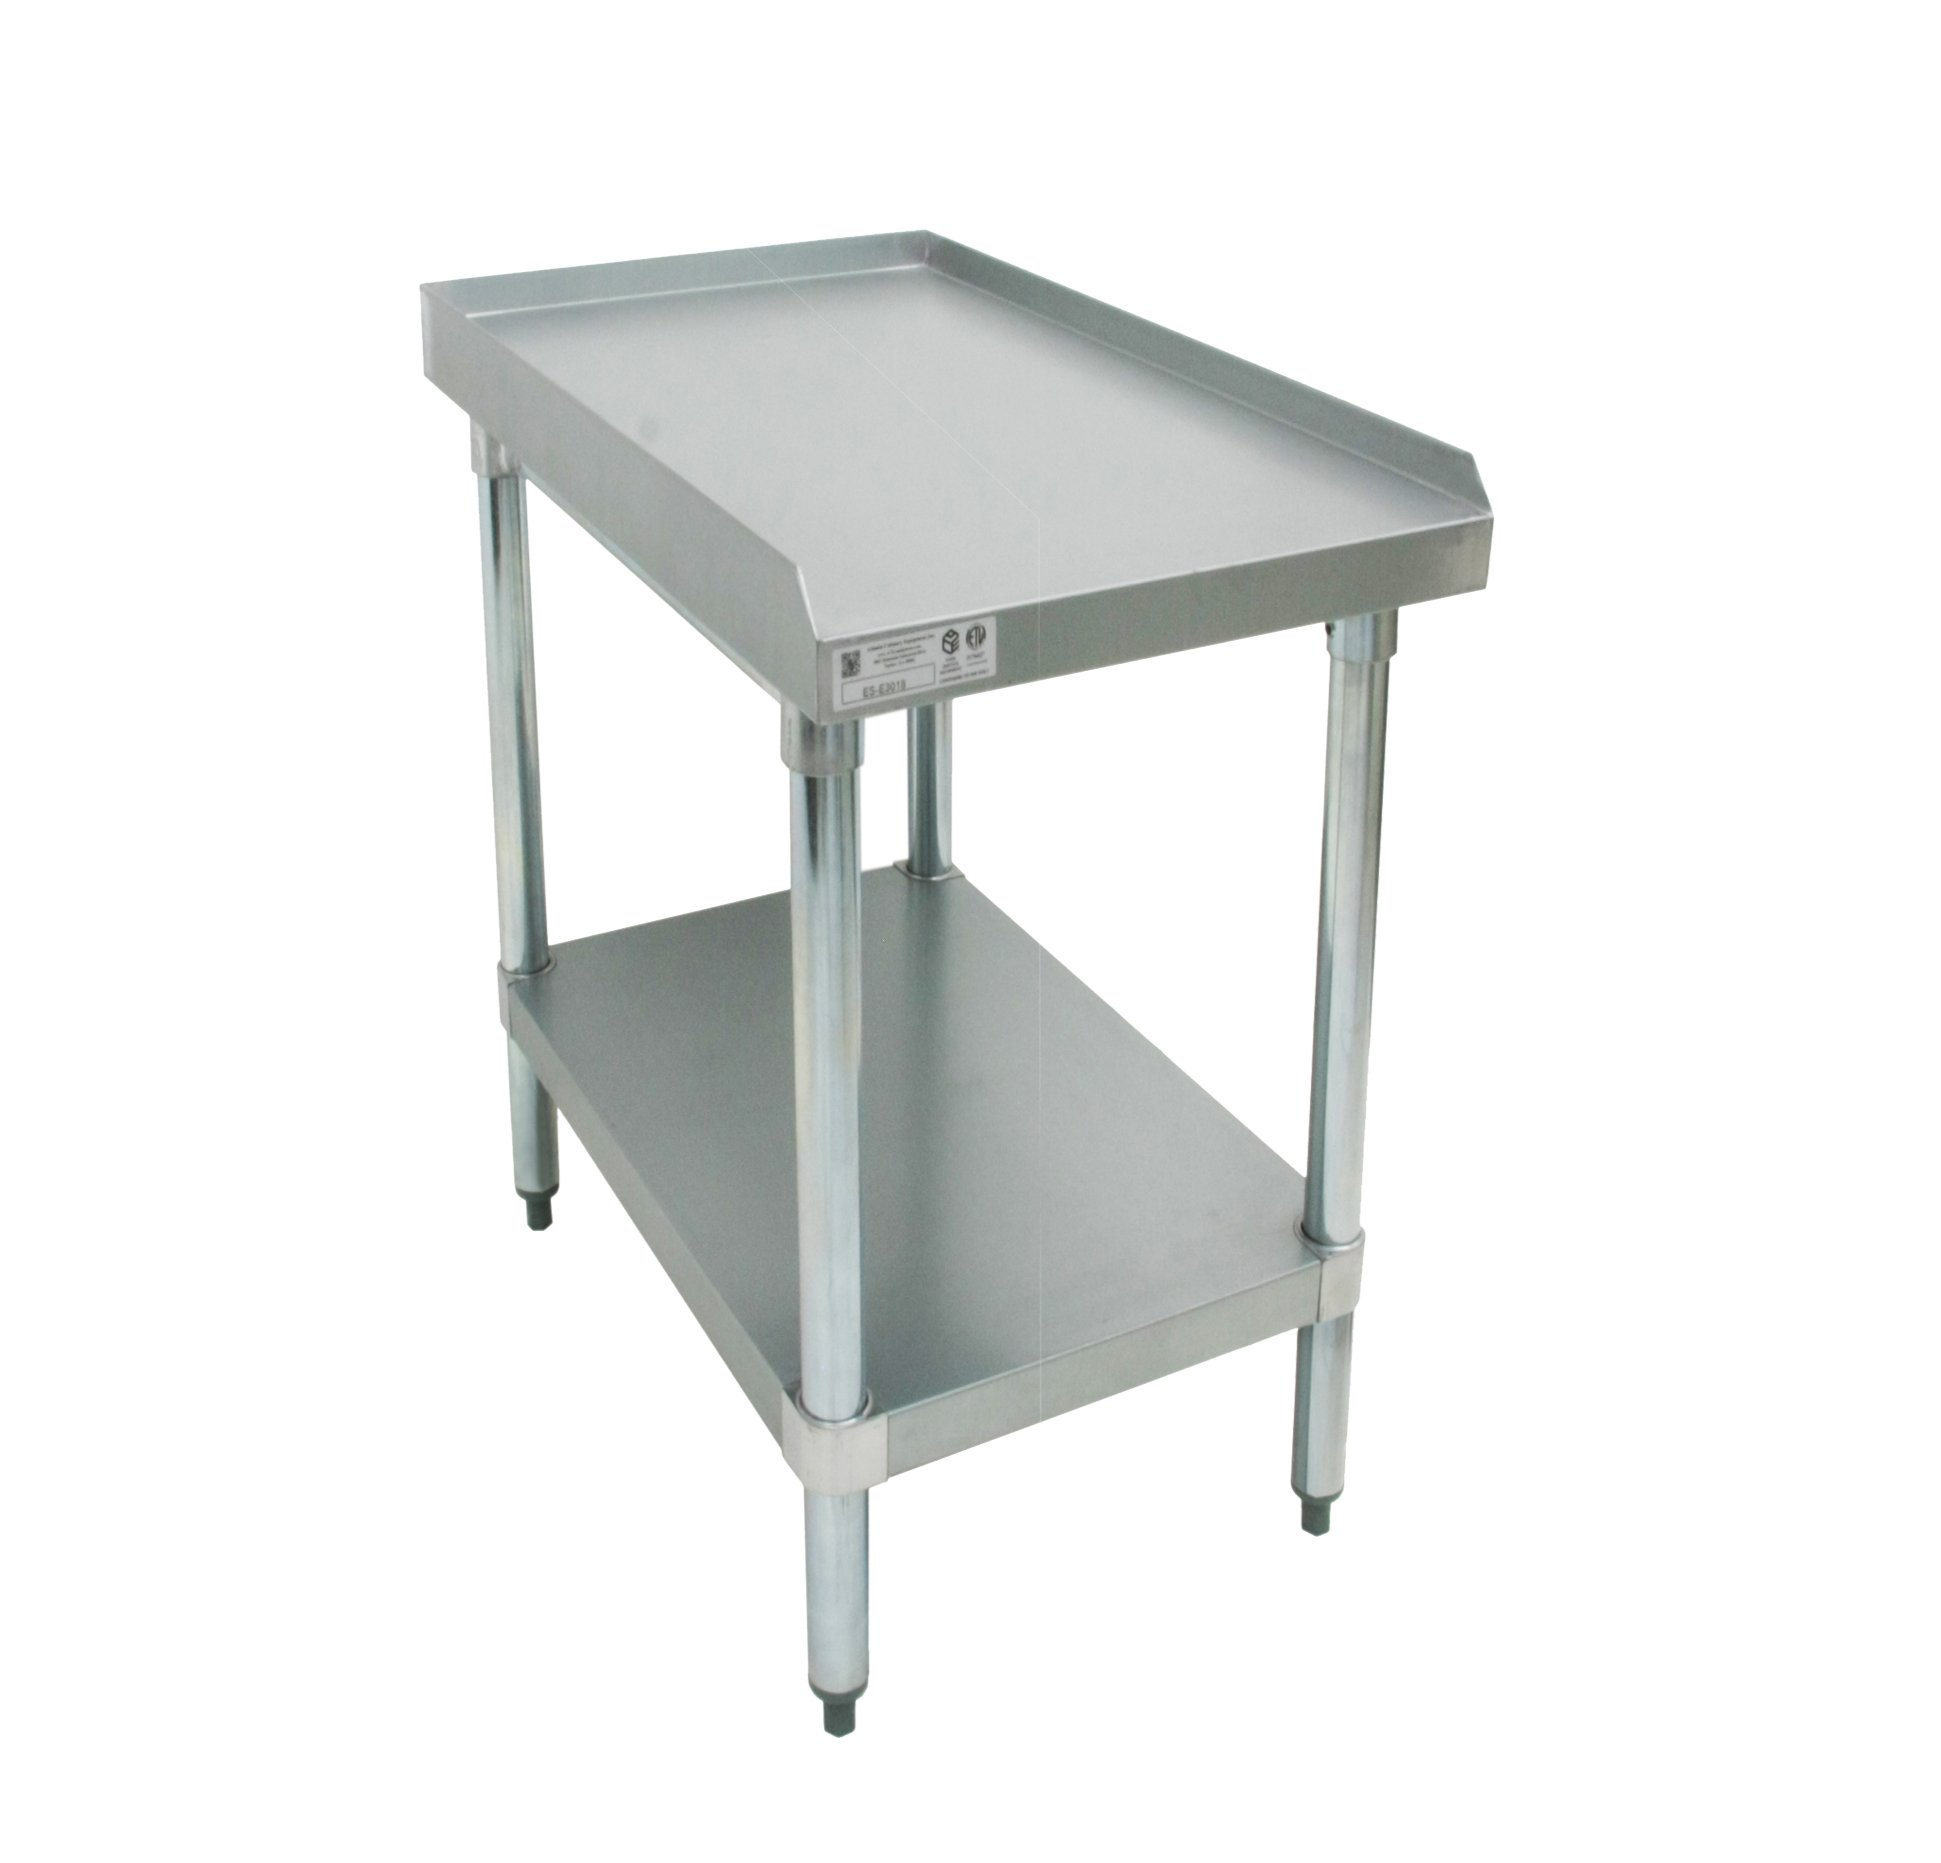 GSW Galvanized Commercial Equipment Stand with 1'' Upturn on 3 Sides, 1 Undershelf & Adjustable Bullet Feet, 30''W x 12''L x 24''H, NSF Approved